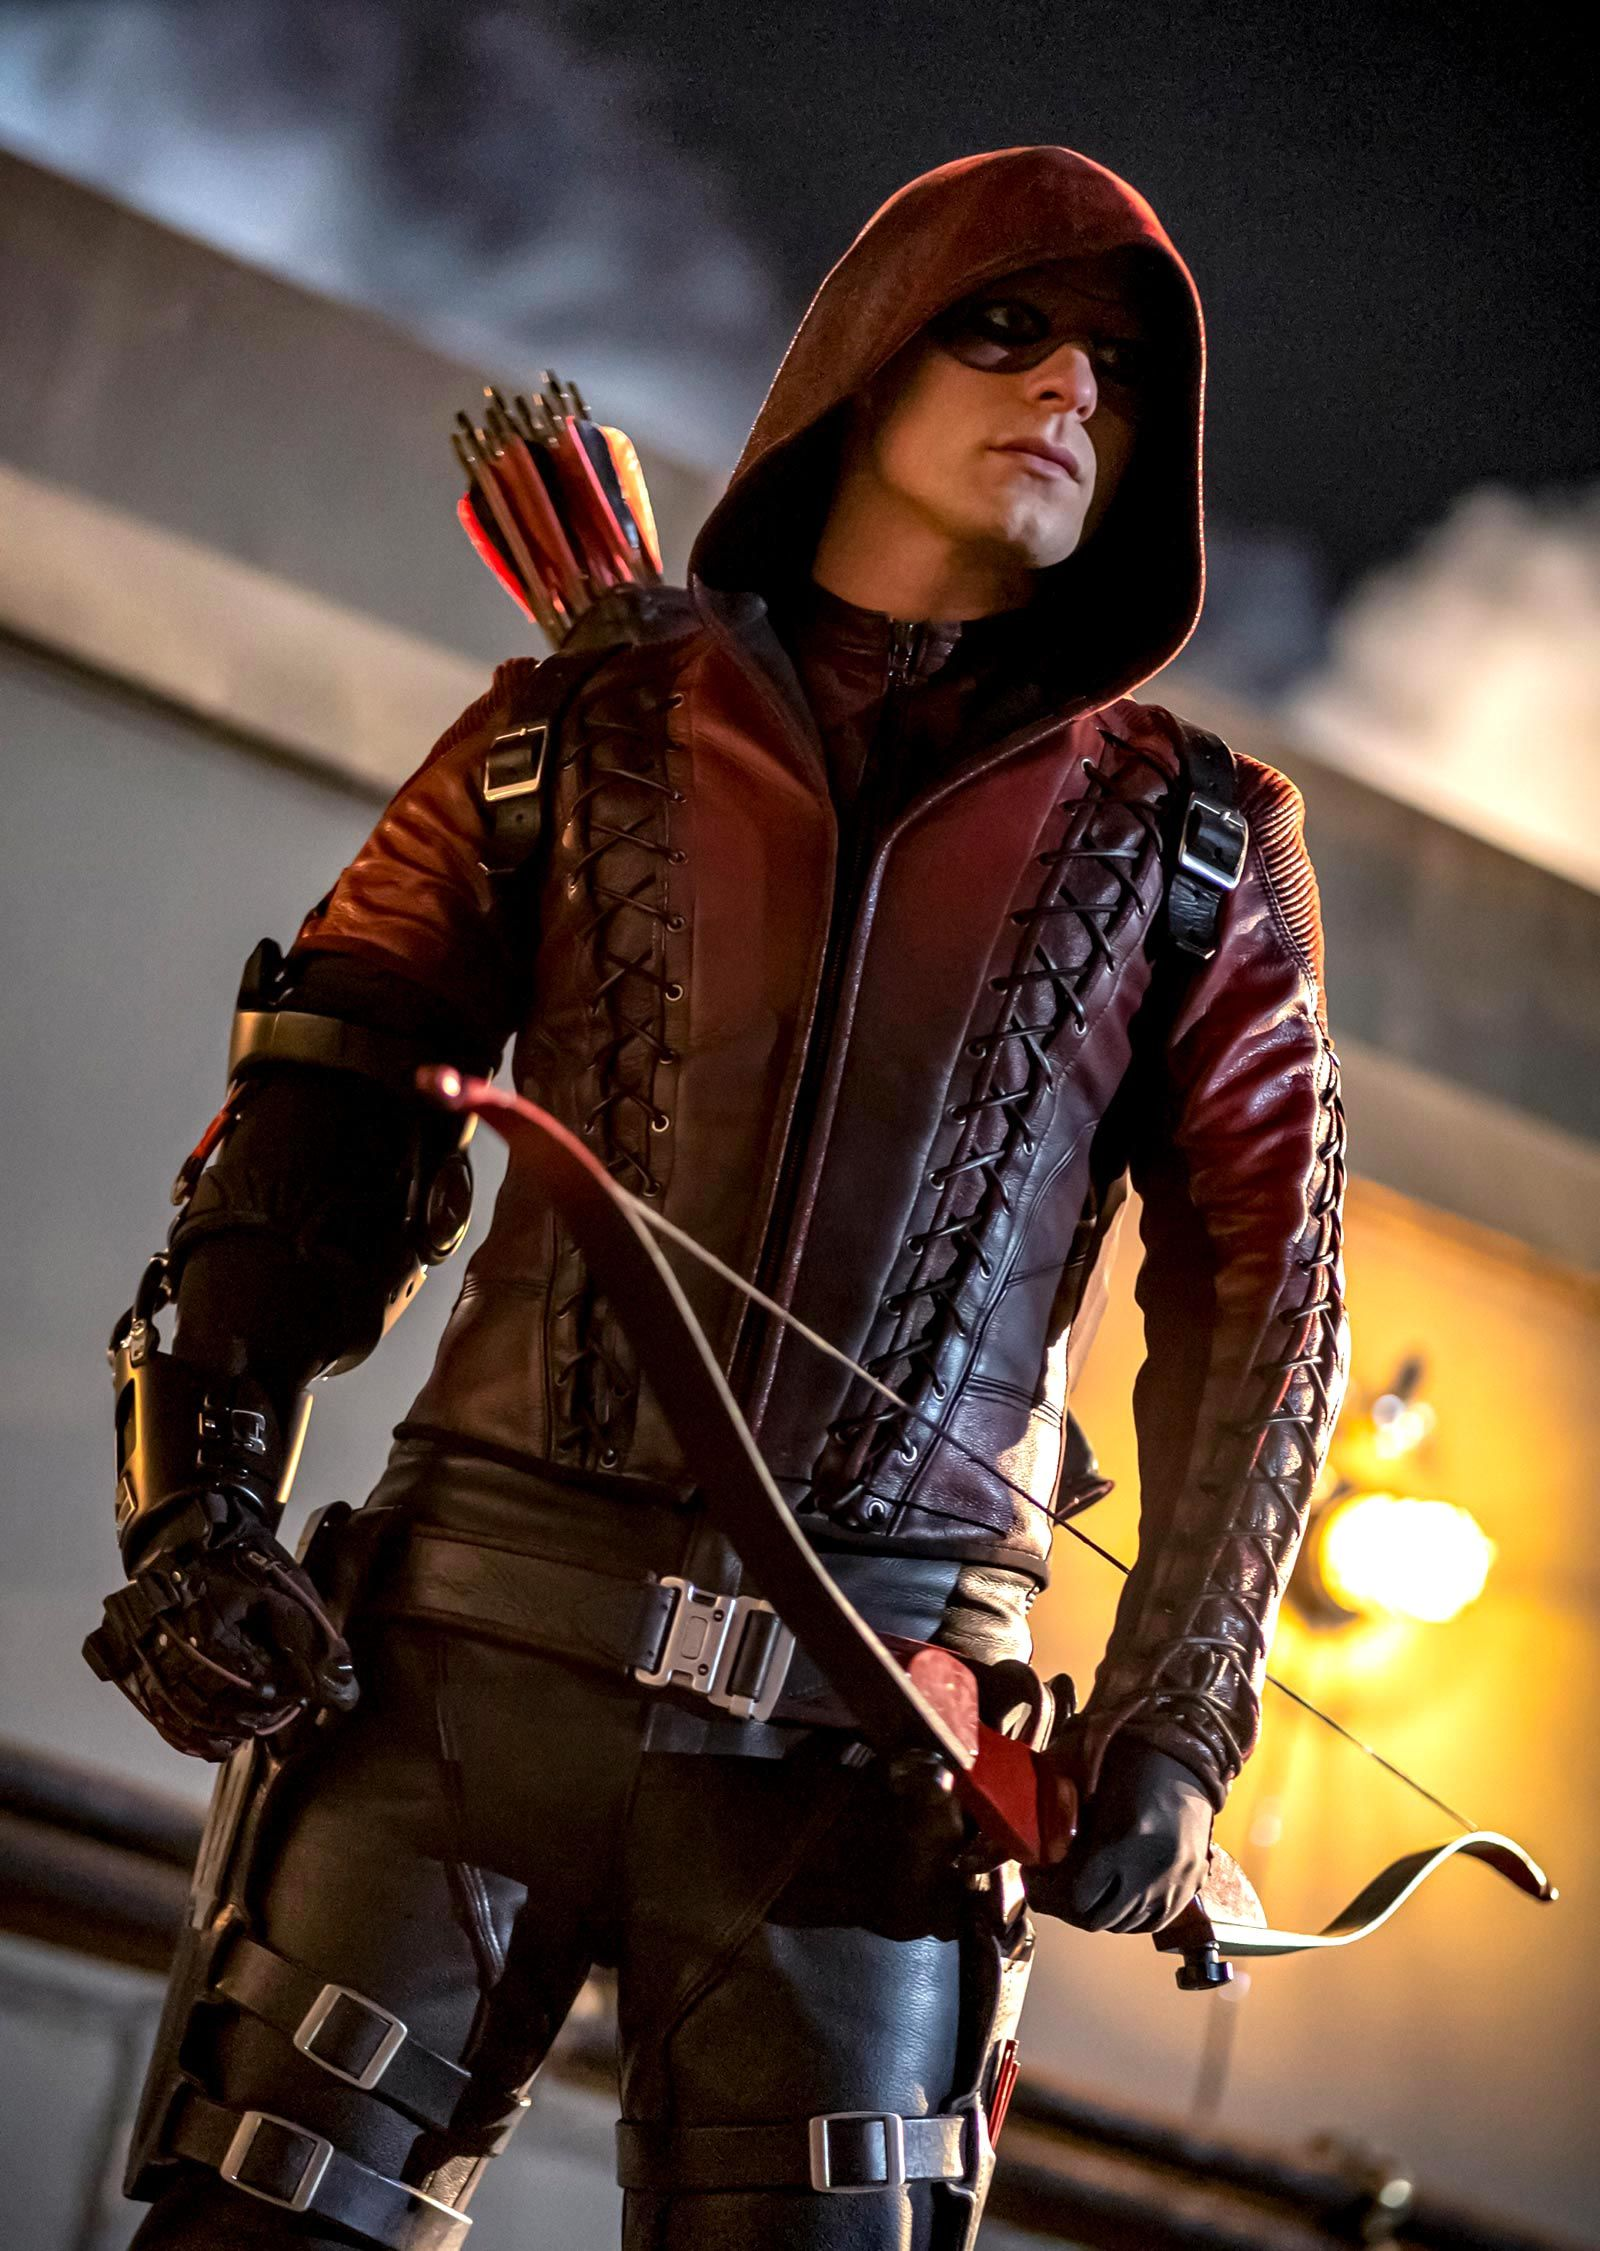 Arrow series finale photos reveal a first look at the return of a fan-favourite character